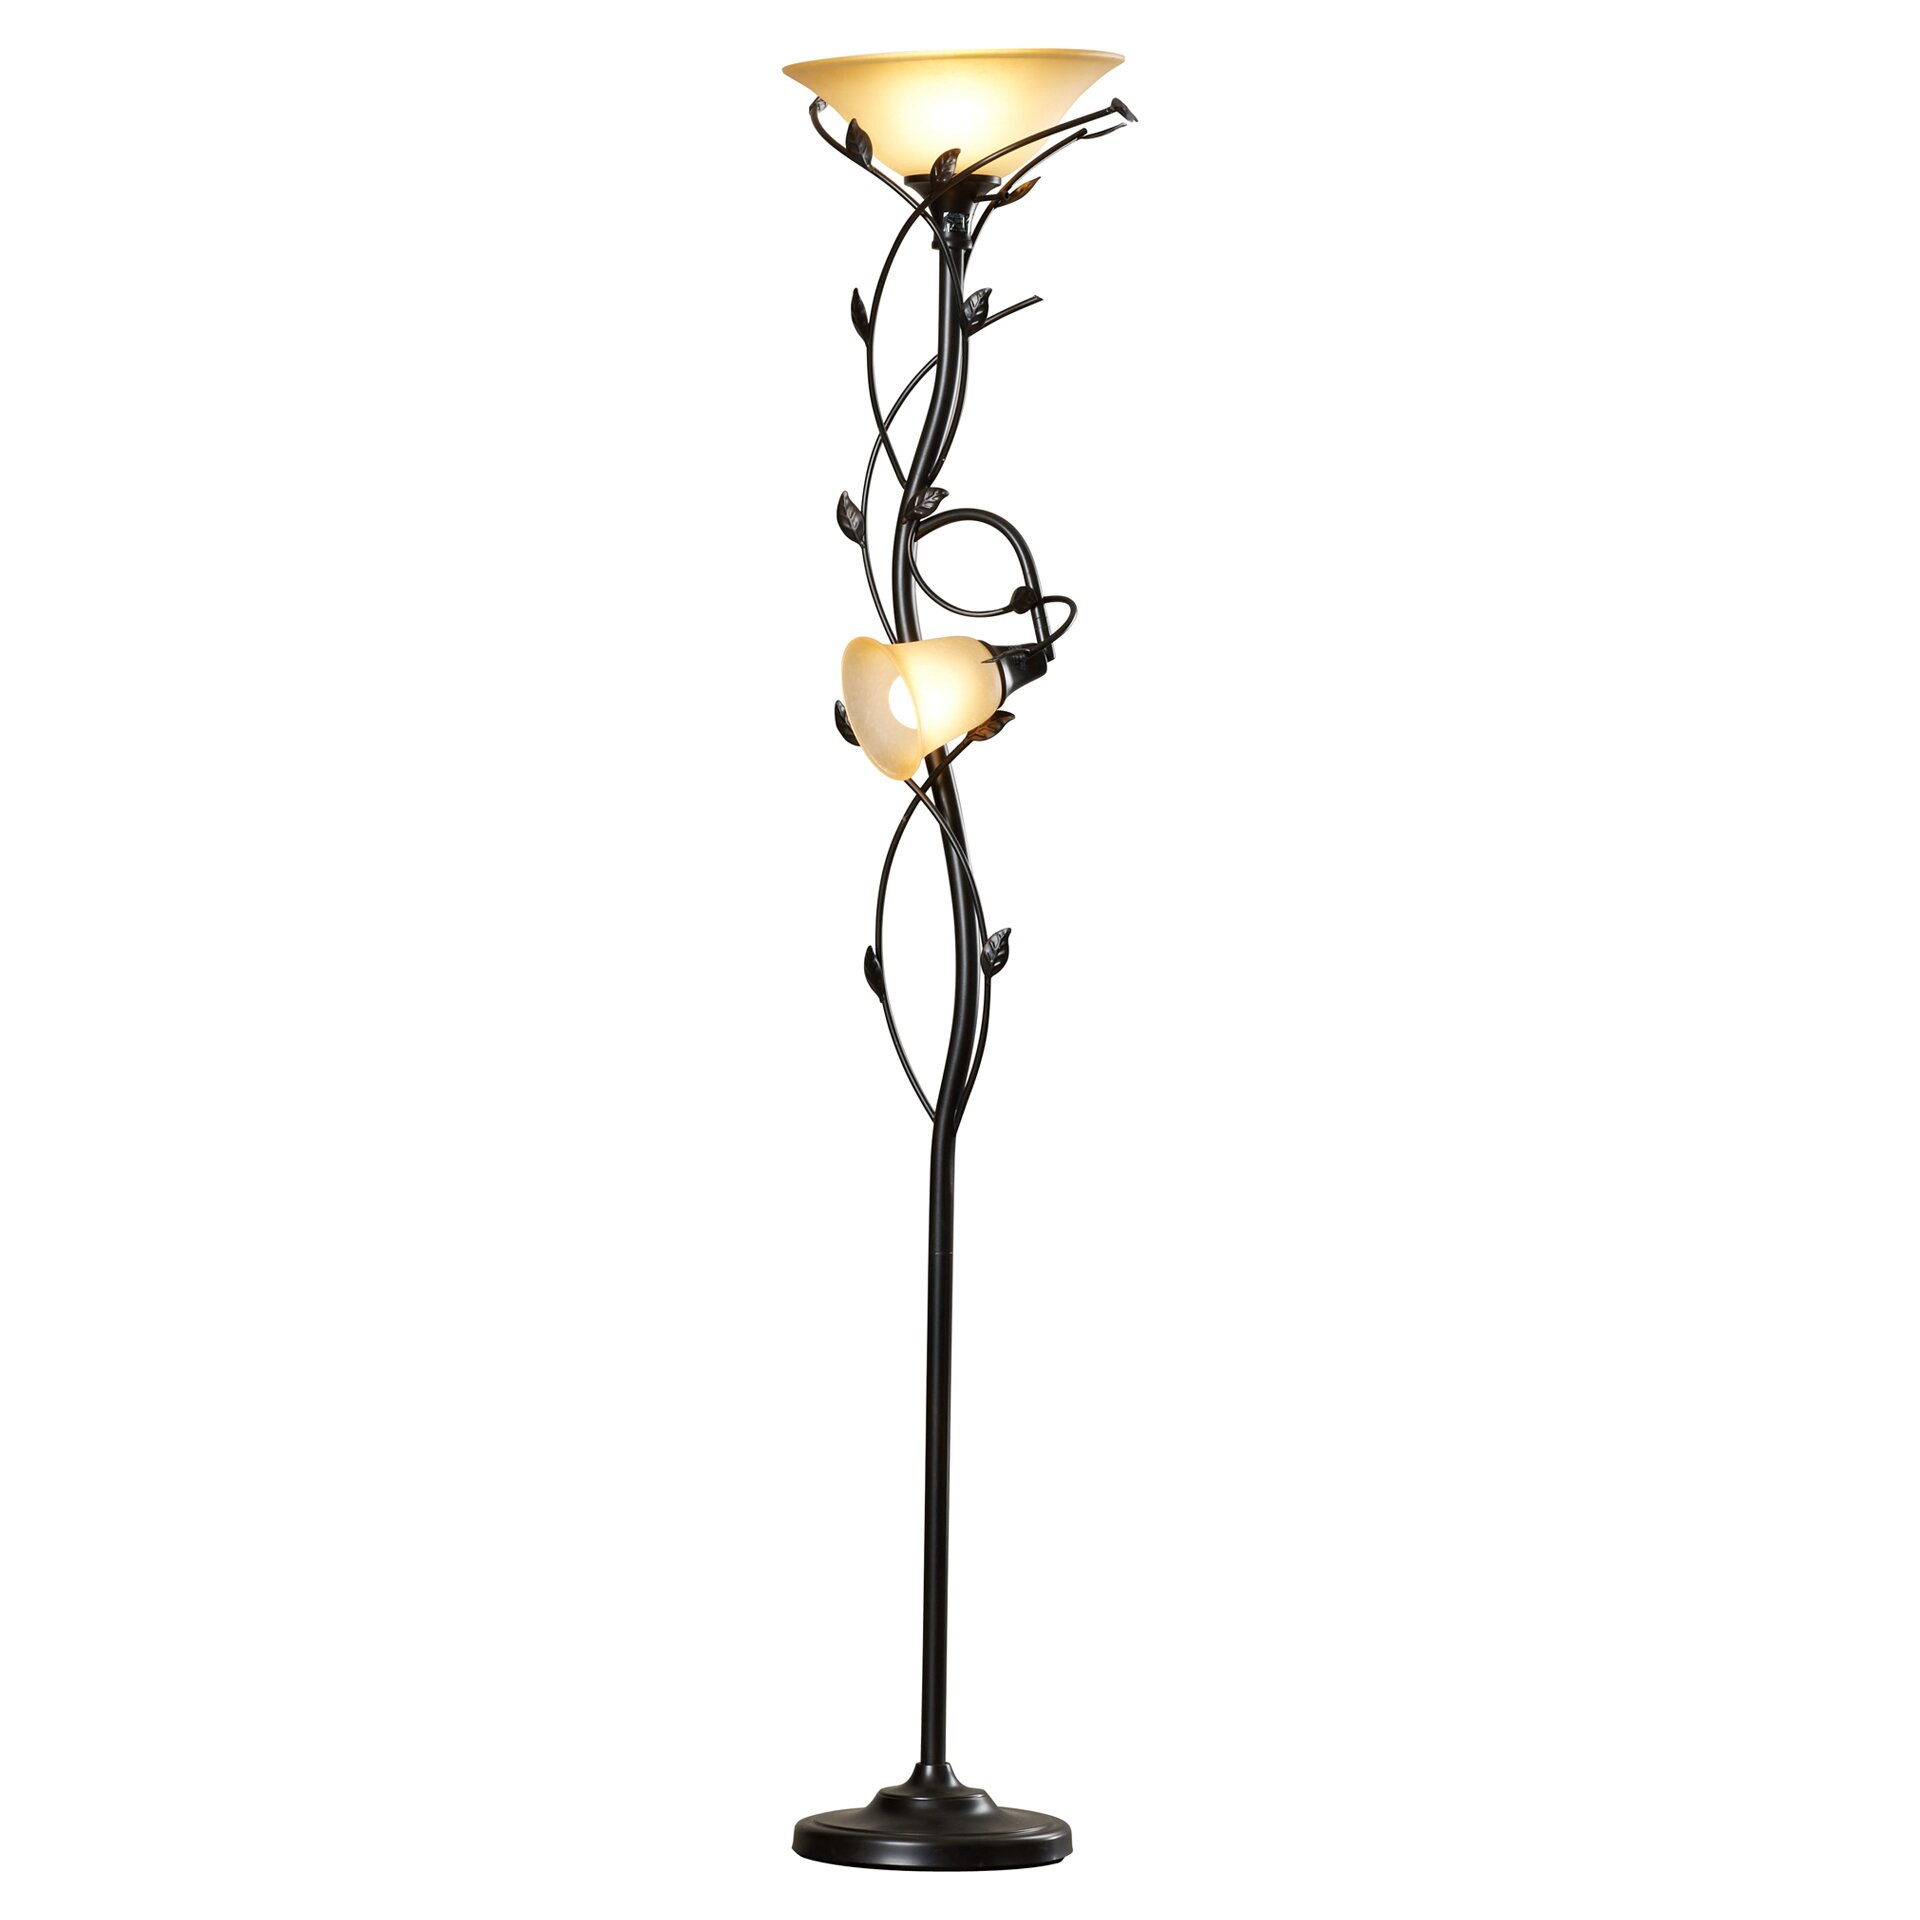 lighting lamps traditional floor lamps alcott hill sku alct5225. Black Bedroom Furniture Sets. Home Design Ideas